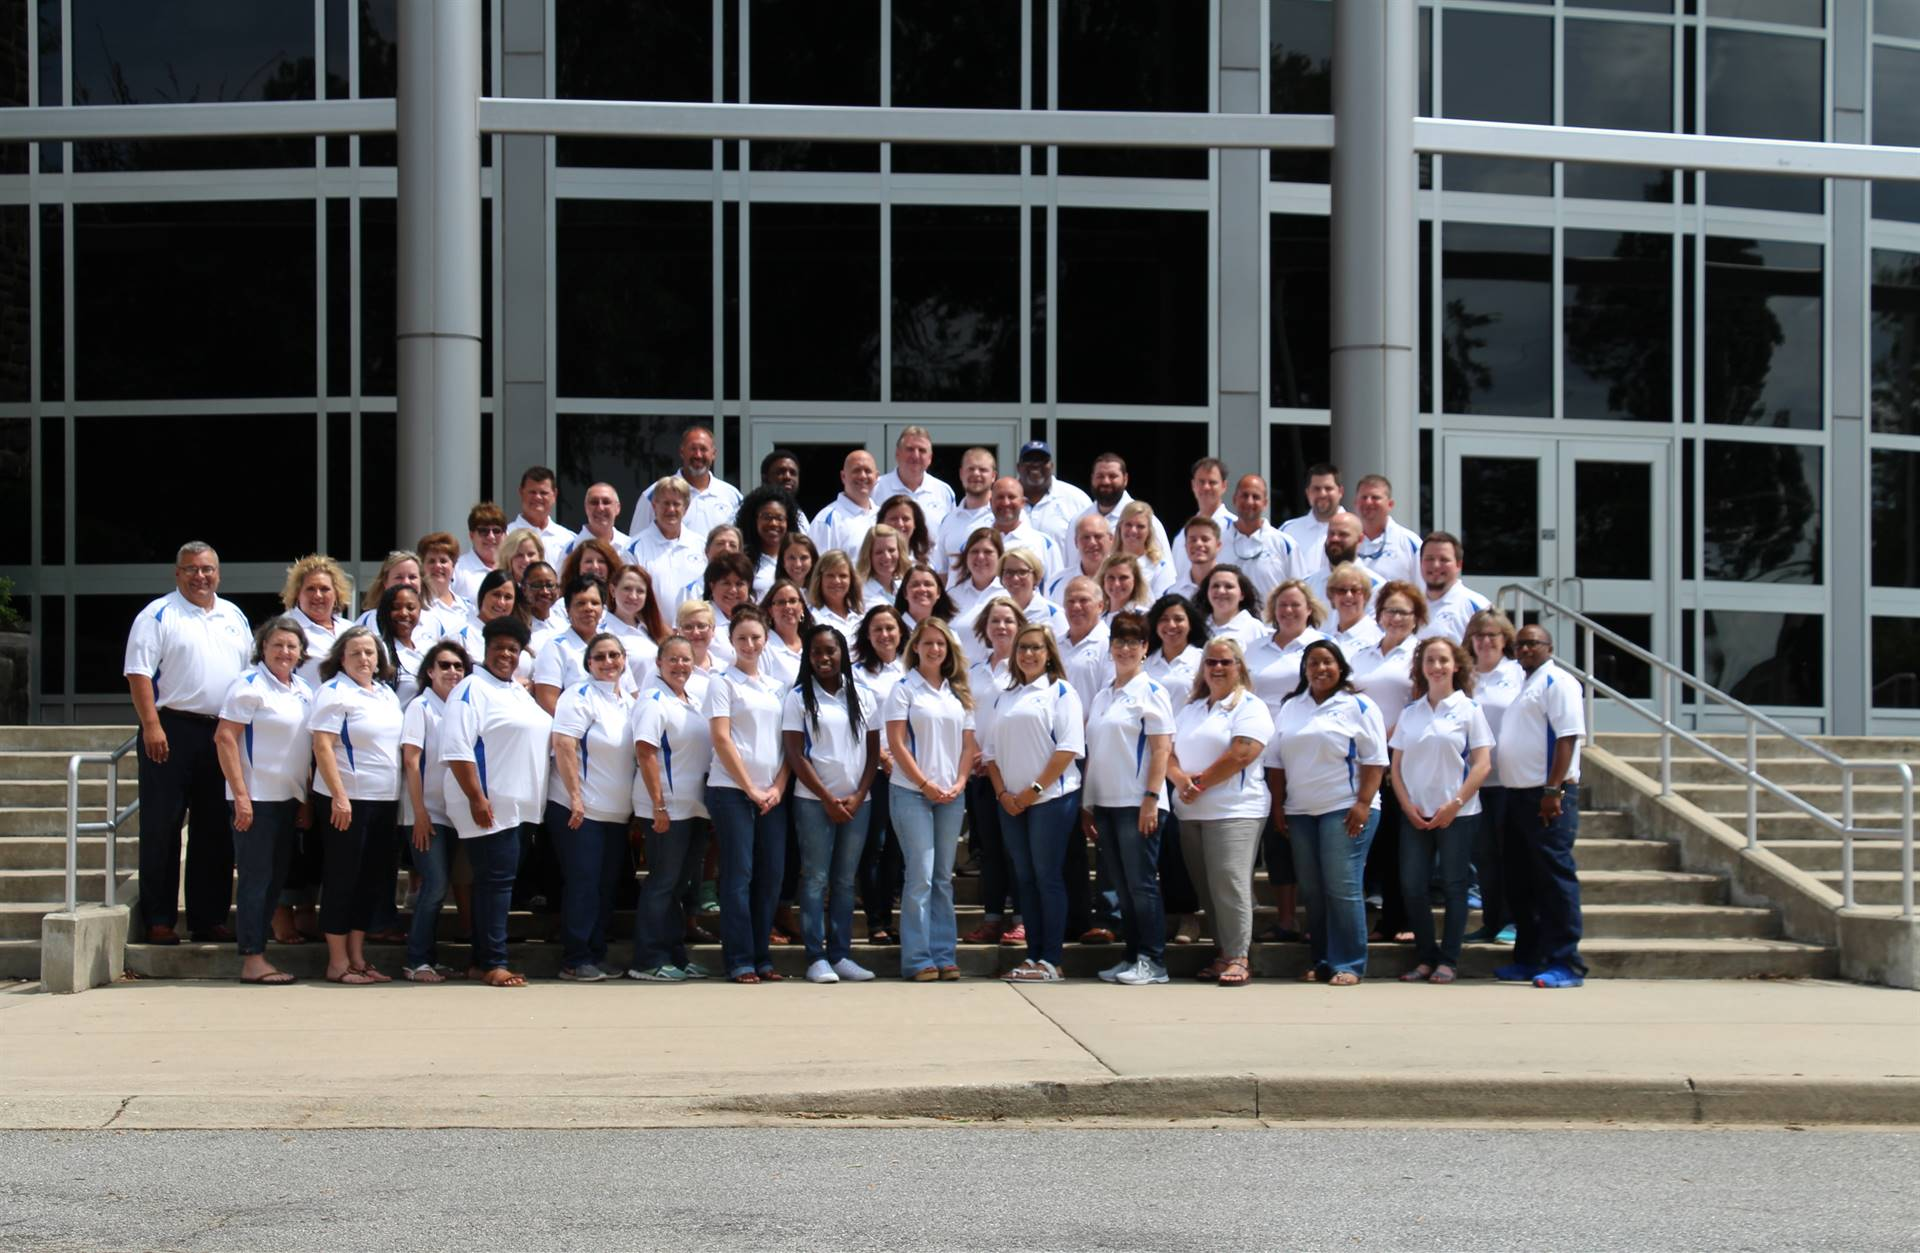 Broome Faculty and Staff 2018-2019